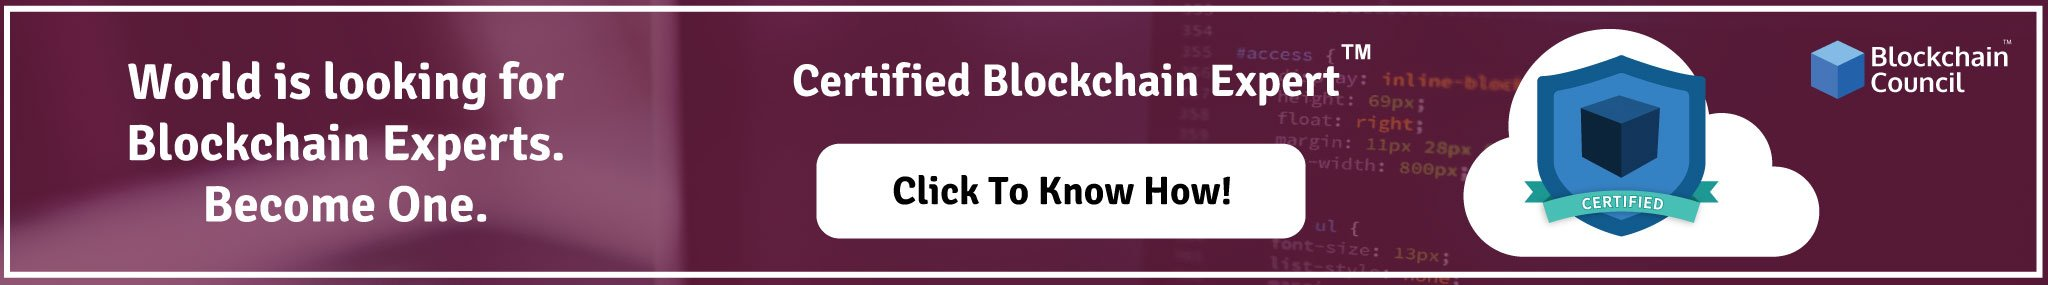 World is looking for a Certified Blockchain Expert Become one